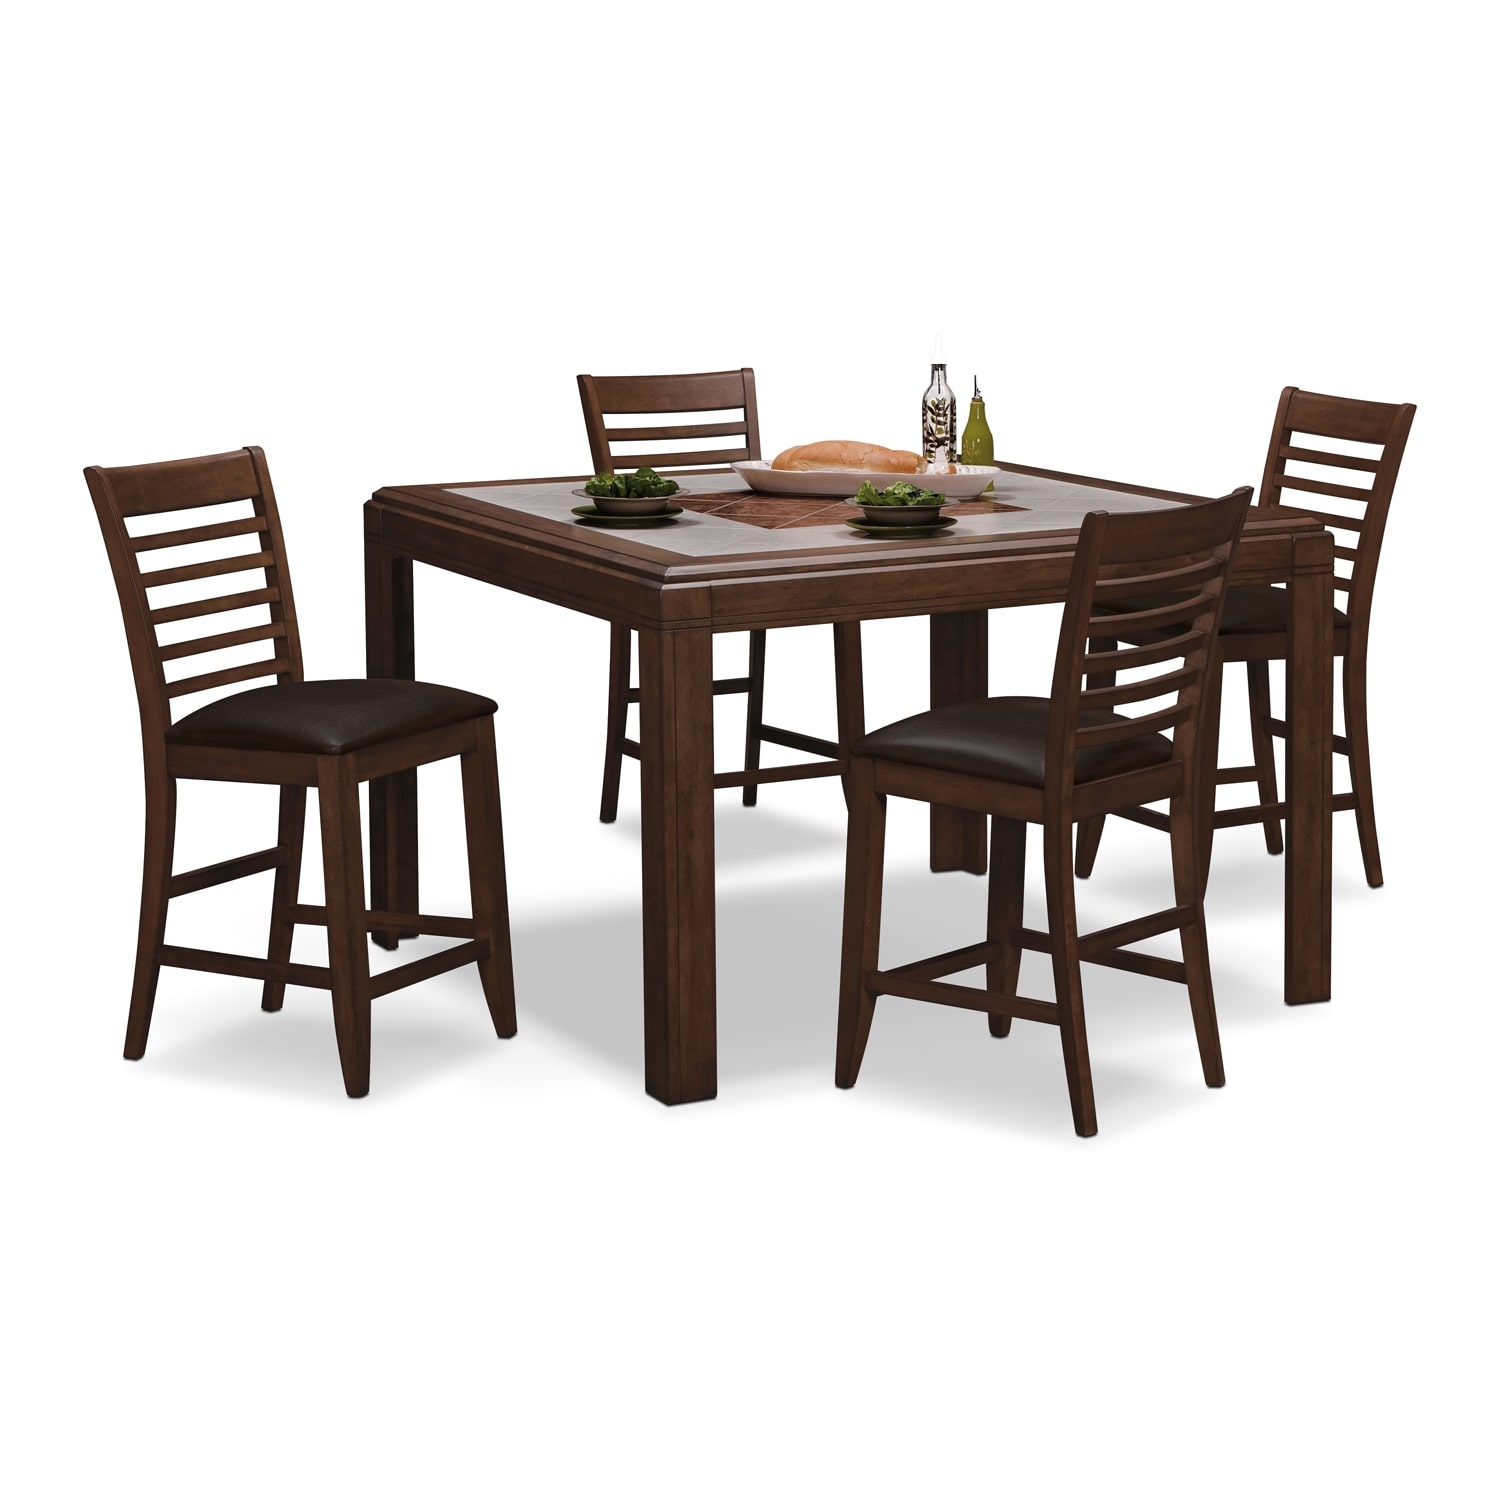 Document moved for Dining room furniture specials